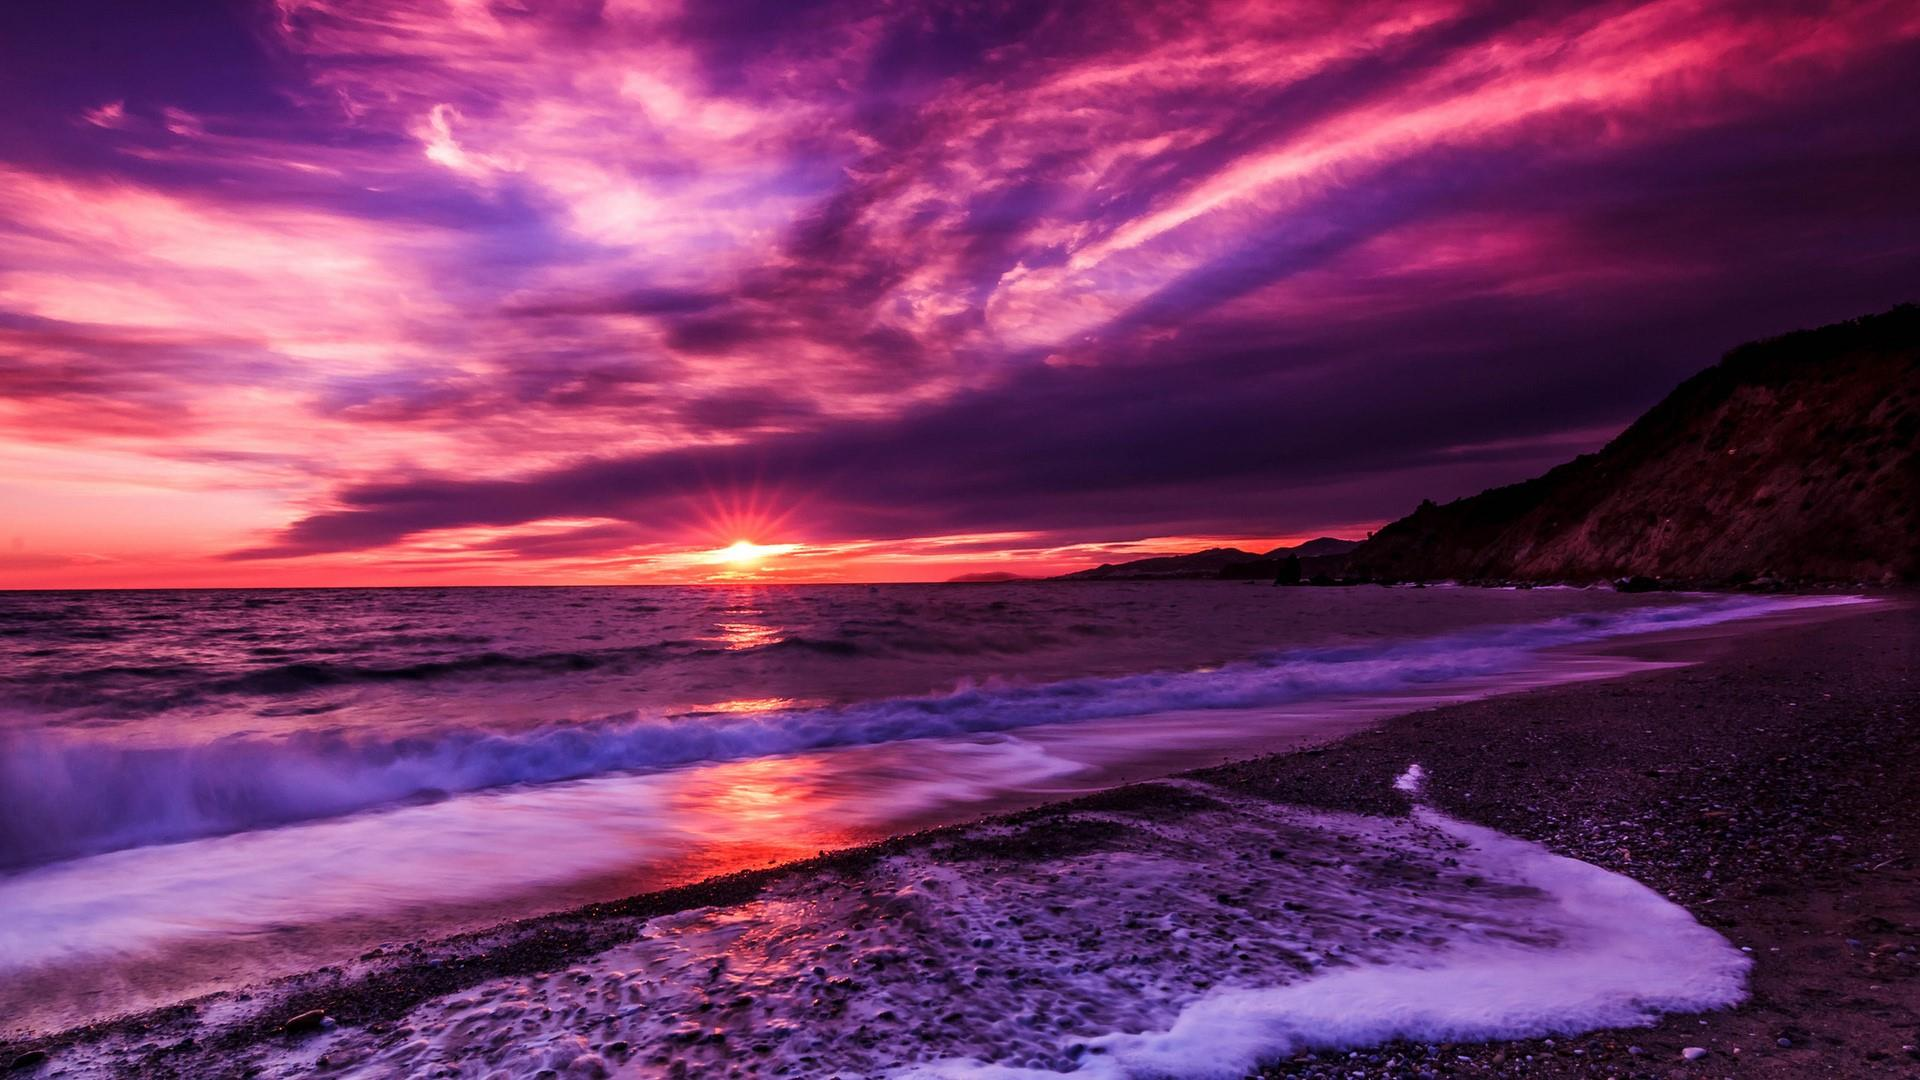 Purple Sunset Wallpapers Top Free Purple Sunset Backgrounds Wallpaperaccess